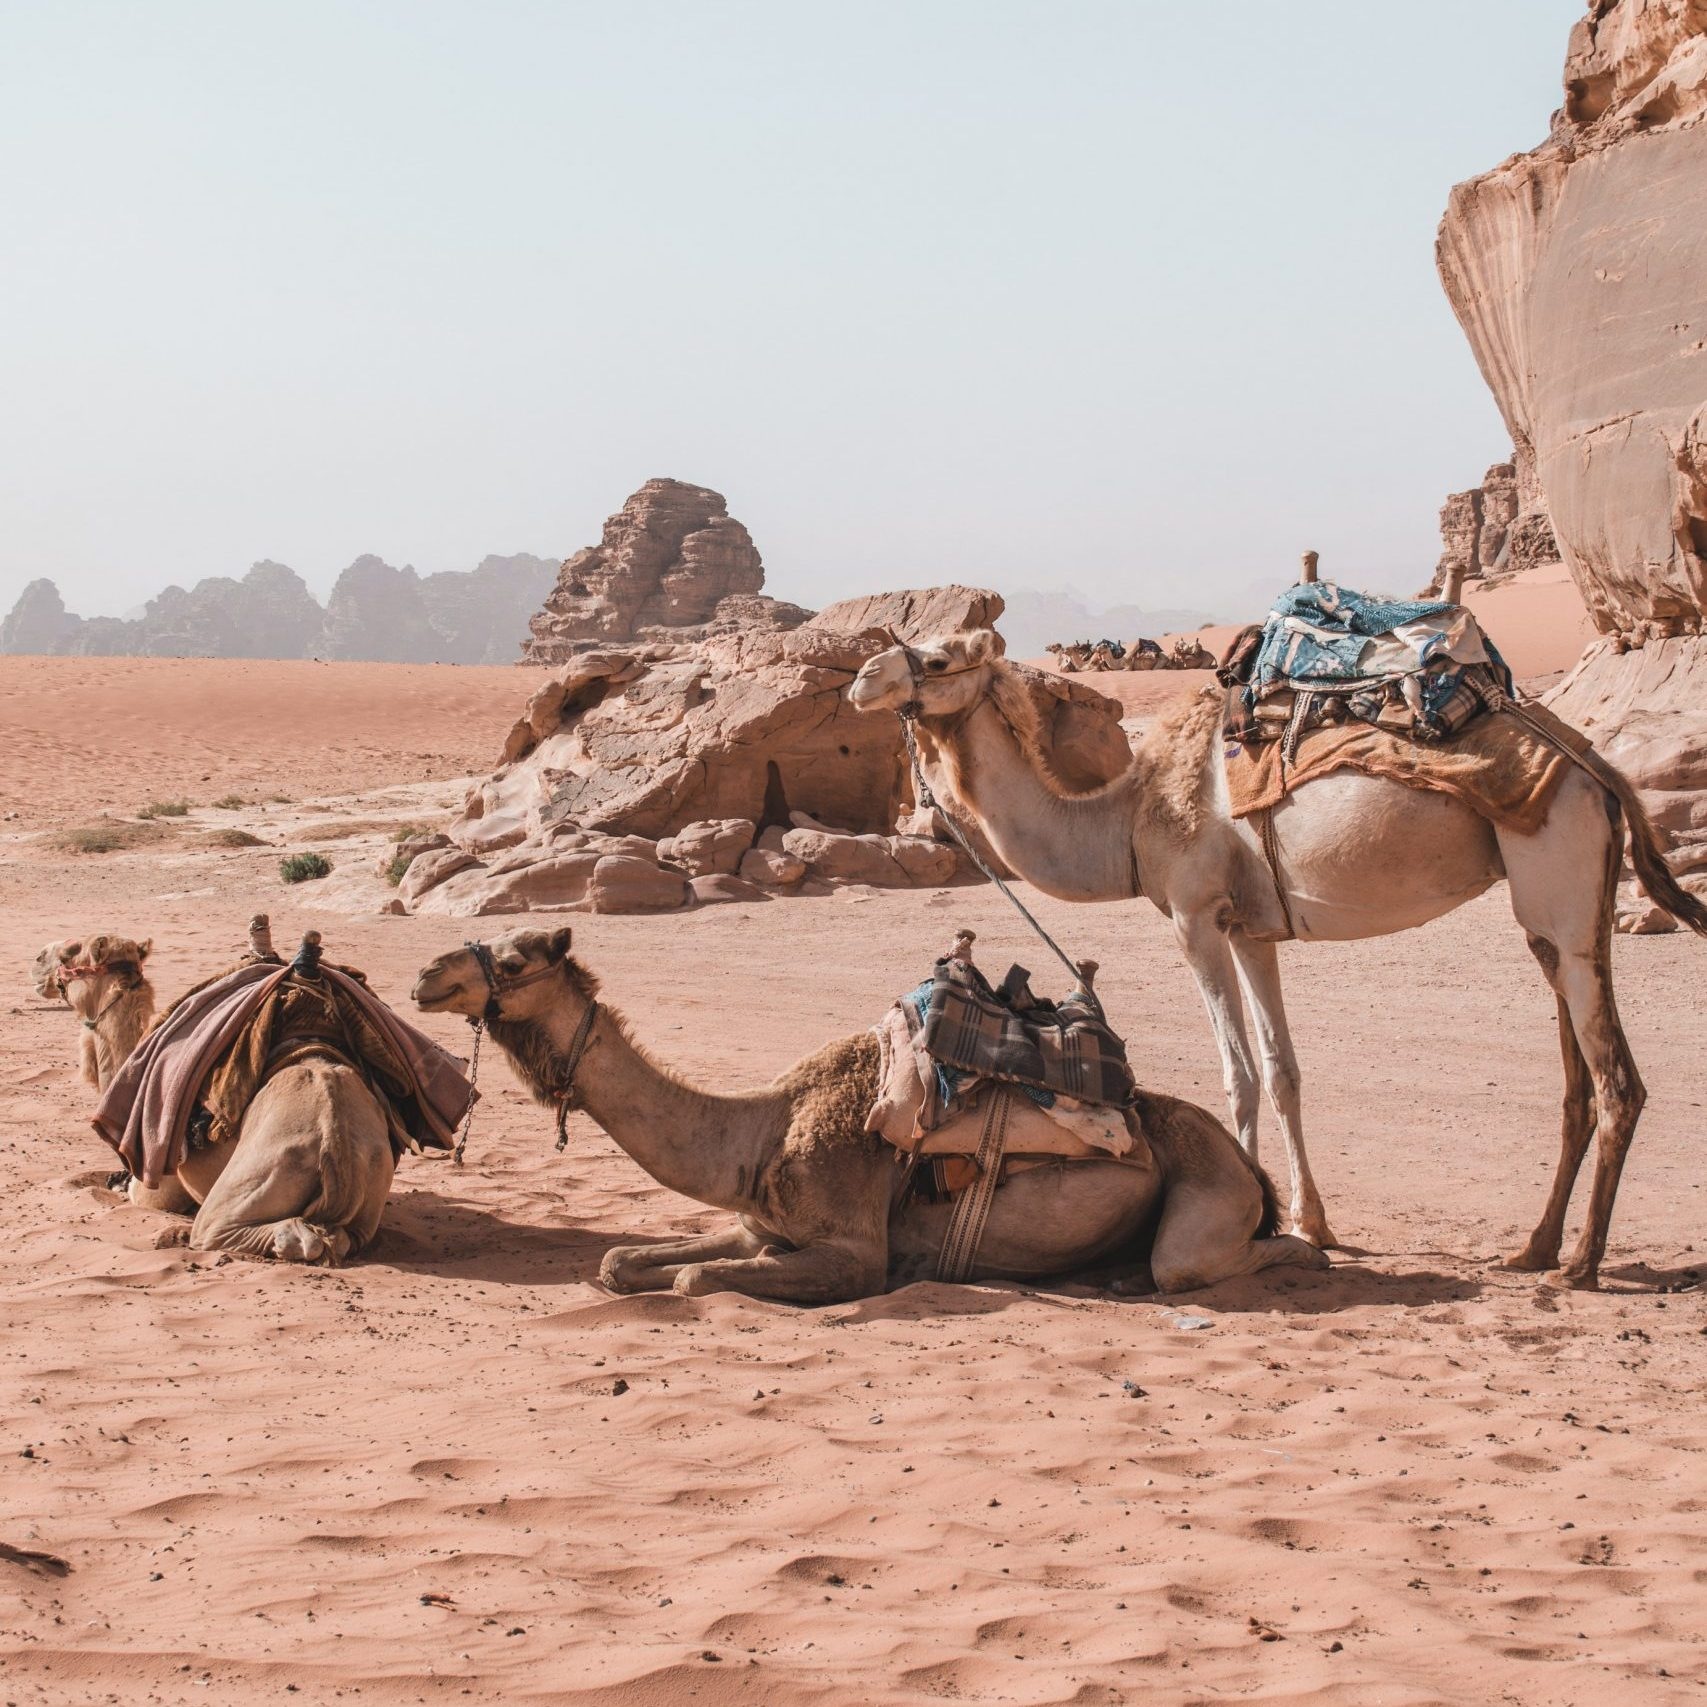 three camels resting in the desert of Wadi Rum, Jordan